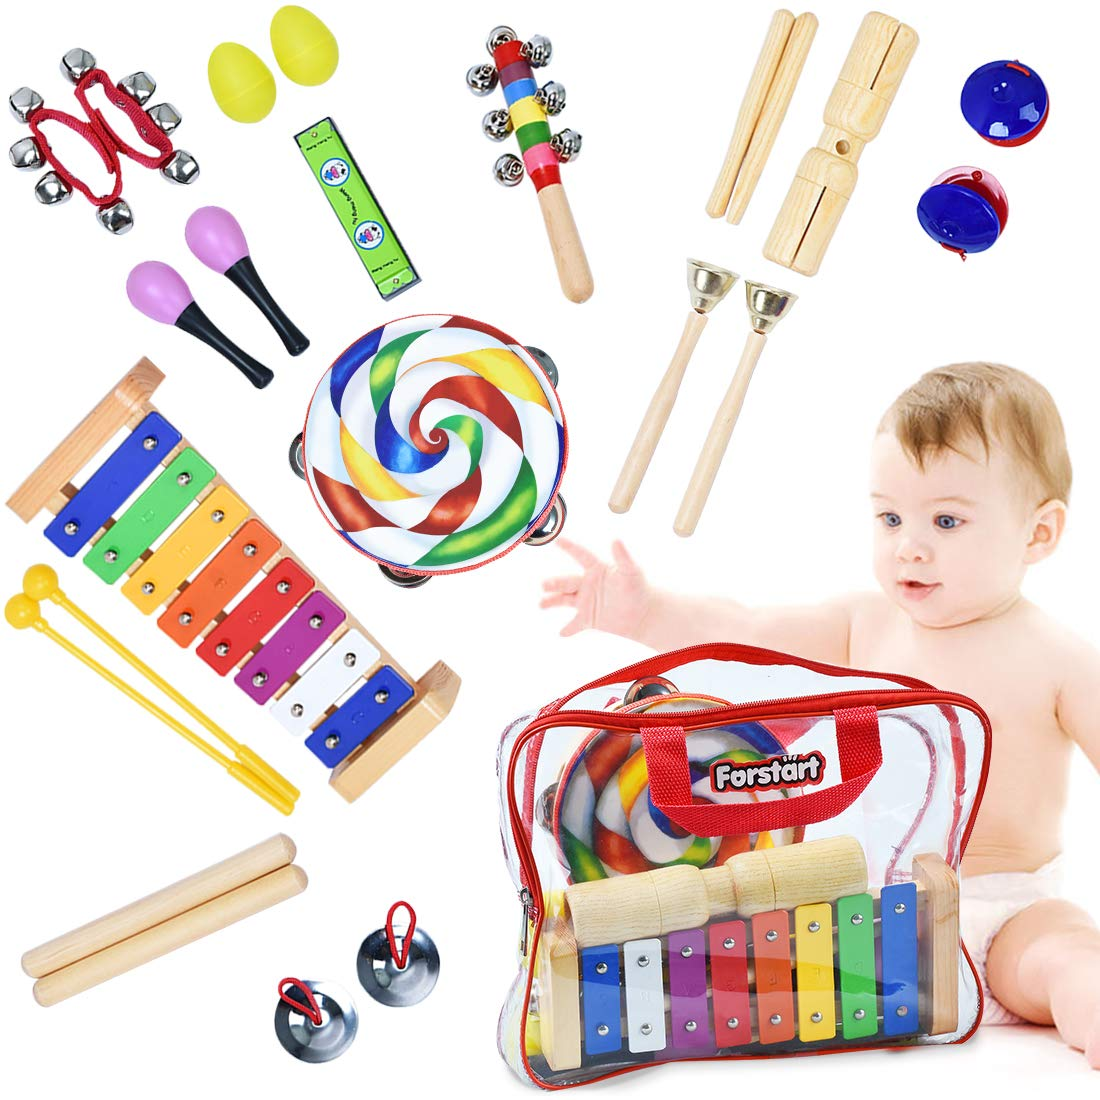 Toddler Musical Instruments - Percussion Instruments for Kids | 13 Types 25pcs Wooden Rhythm & Music Toys Set with Lollipop Tambourine Xylophone Early Learning Preschool Educational Toys Storage Bag by Forstart